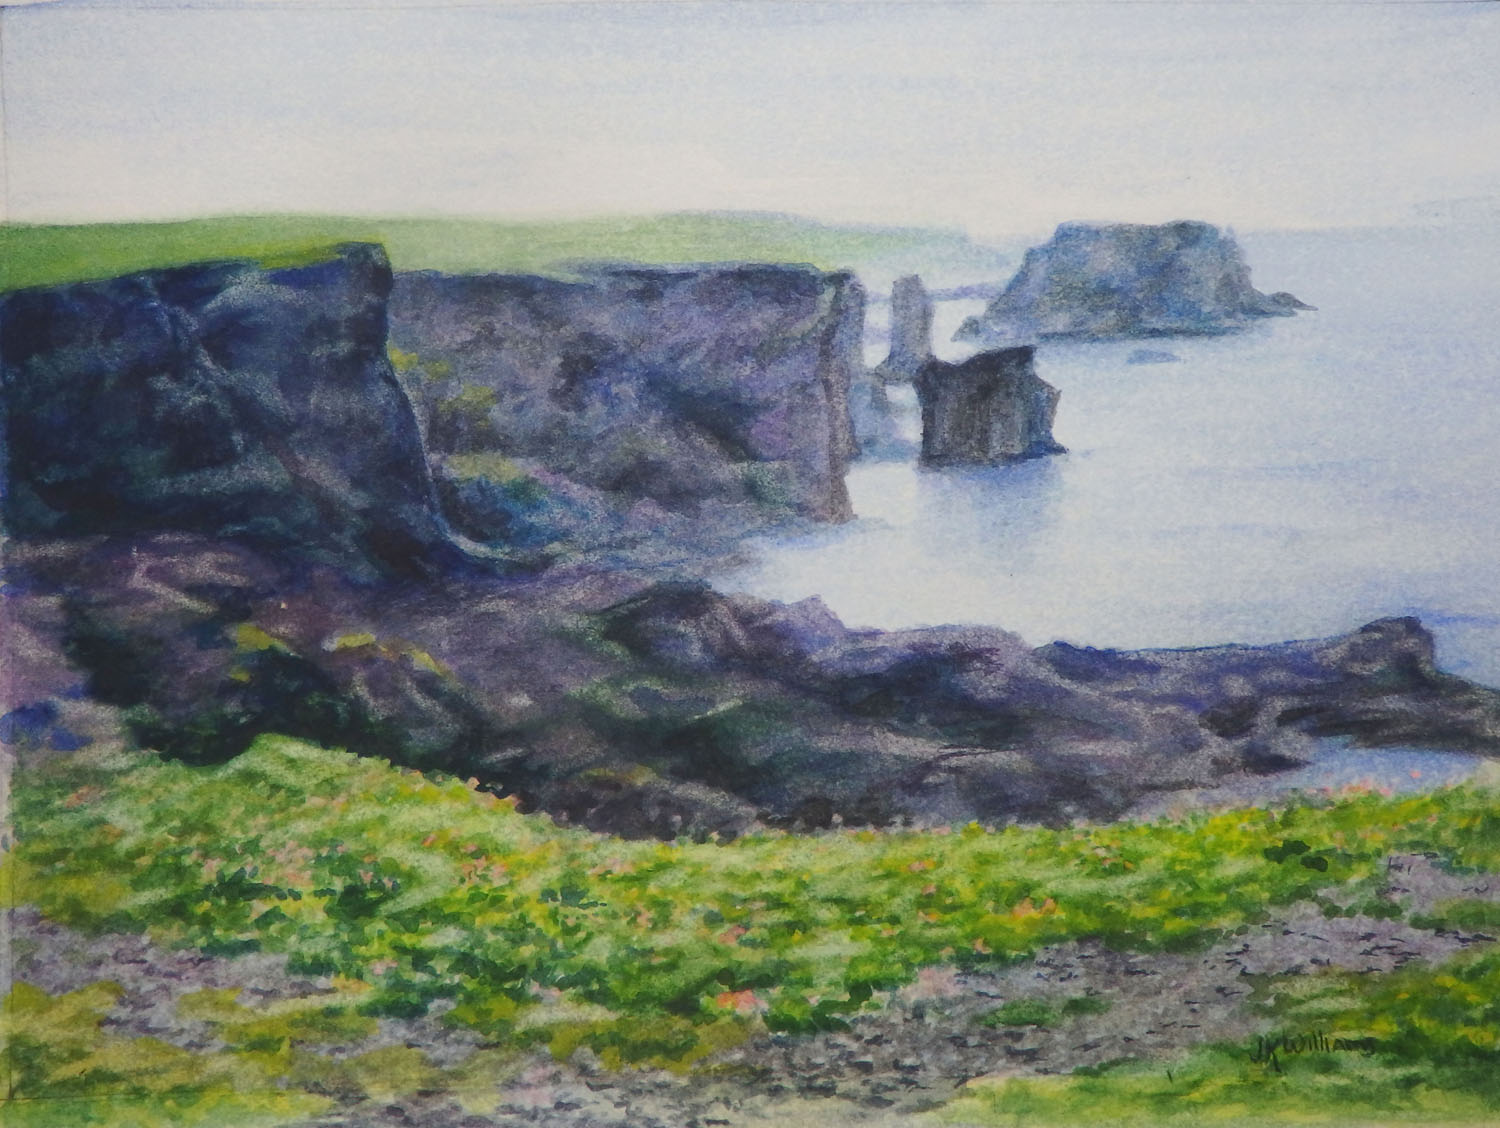 """Esha Ness, Shetland""                          X    Watercolor.     (During heavy seas the crashing waves hurl boulders weight tons up onto the cliffs of volcanic rock.)"